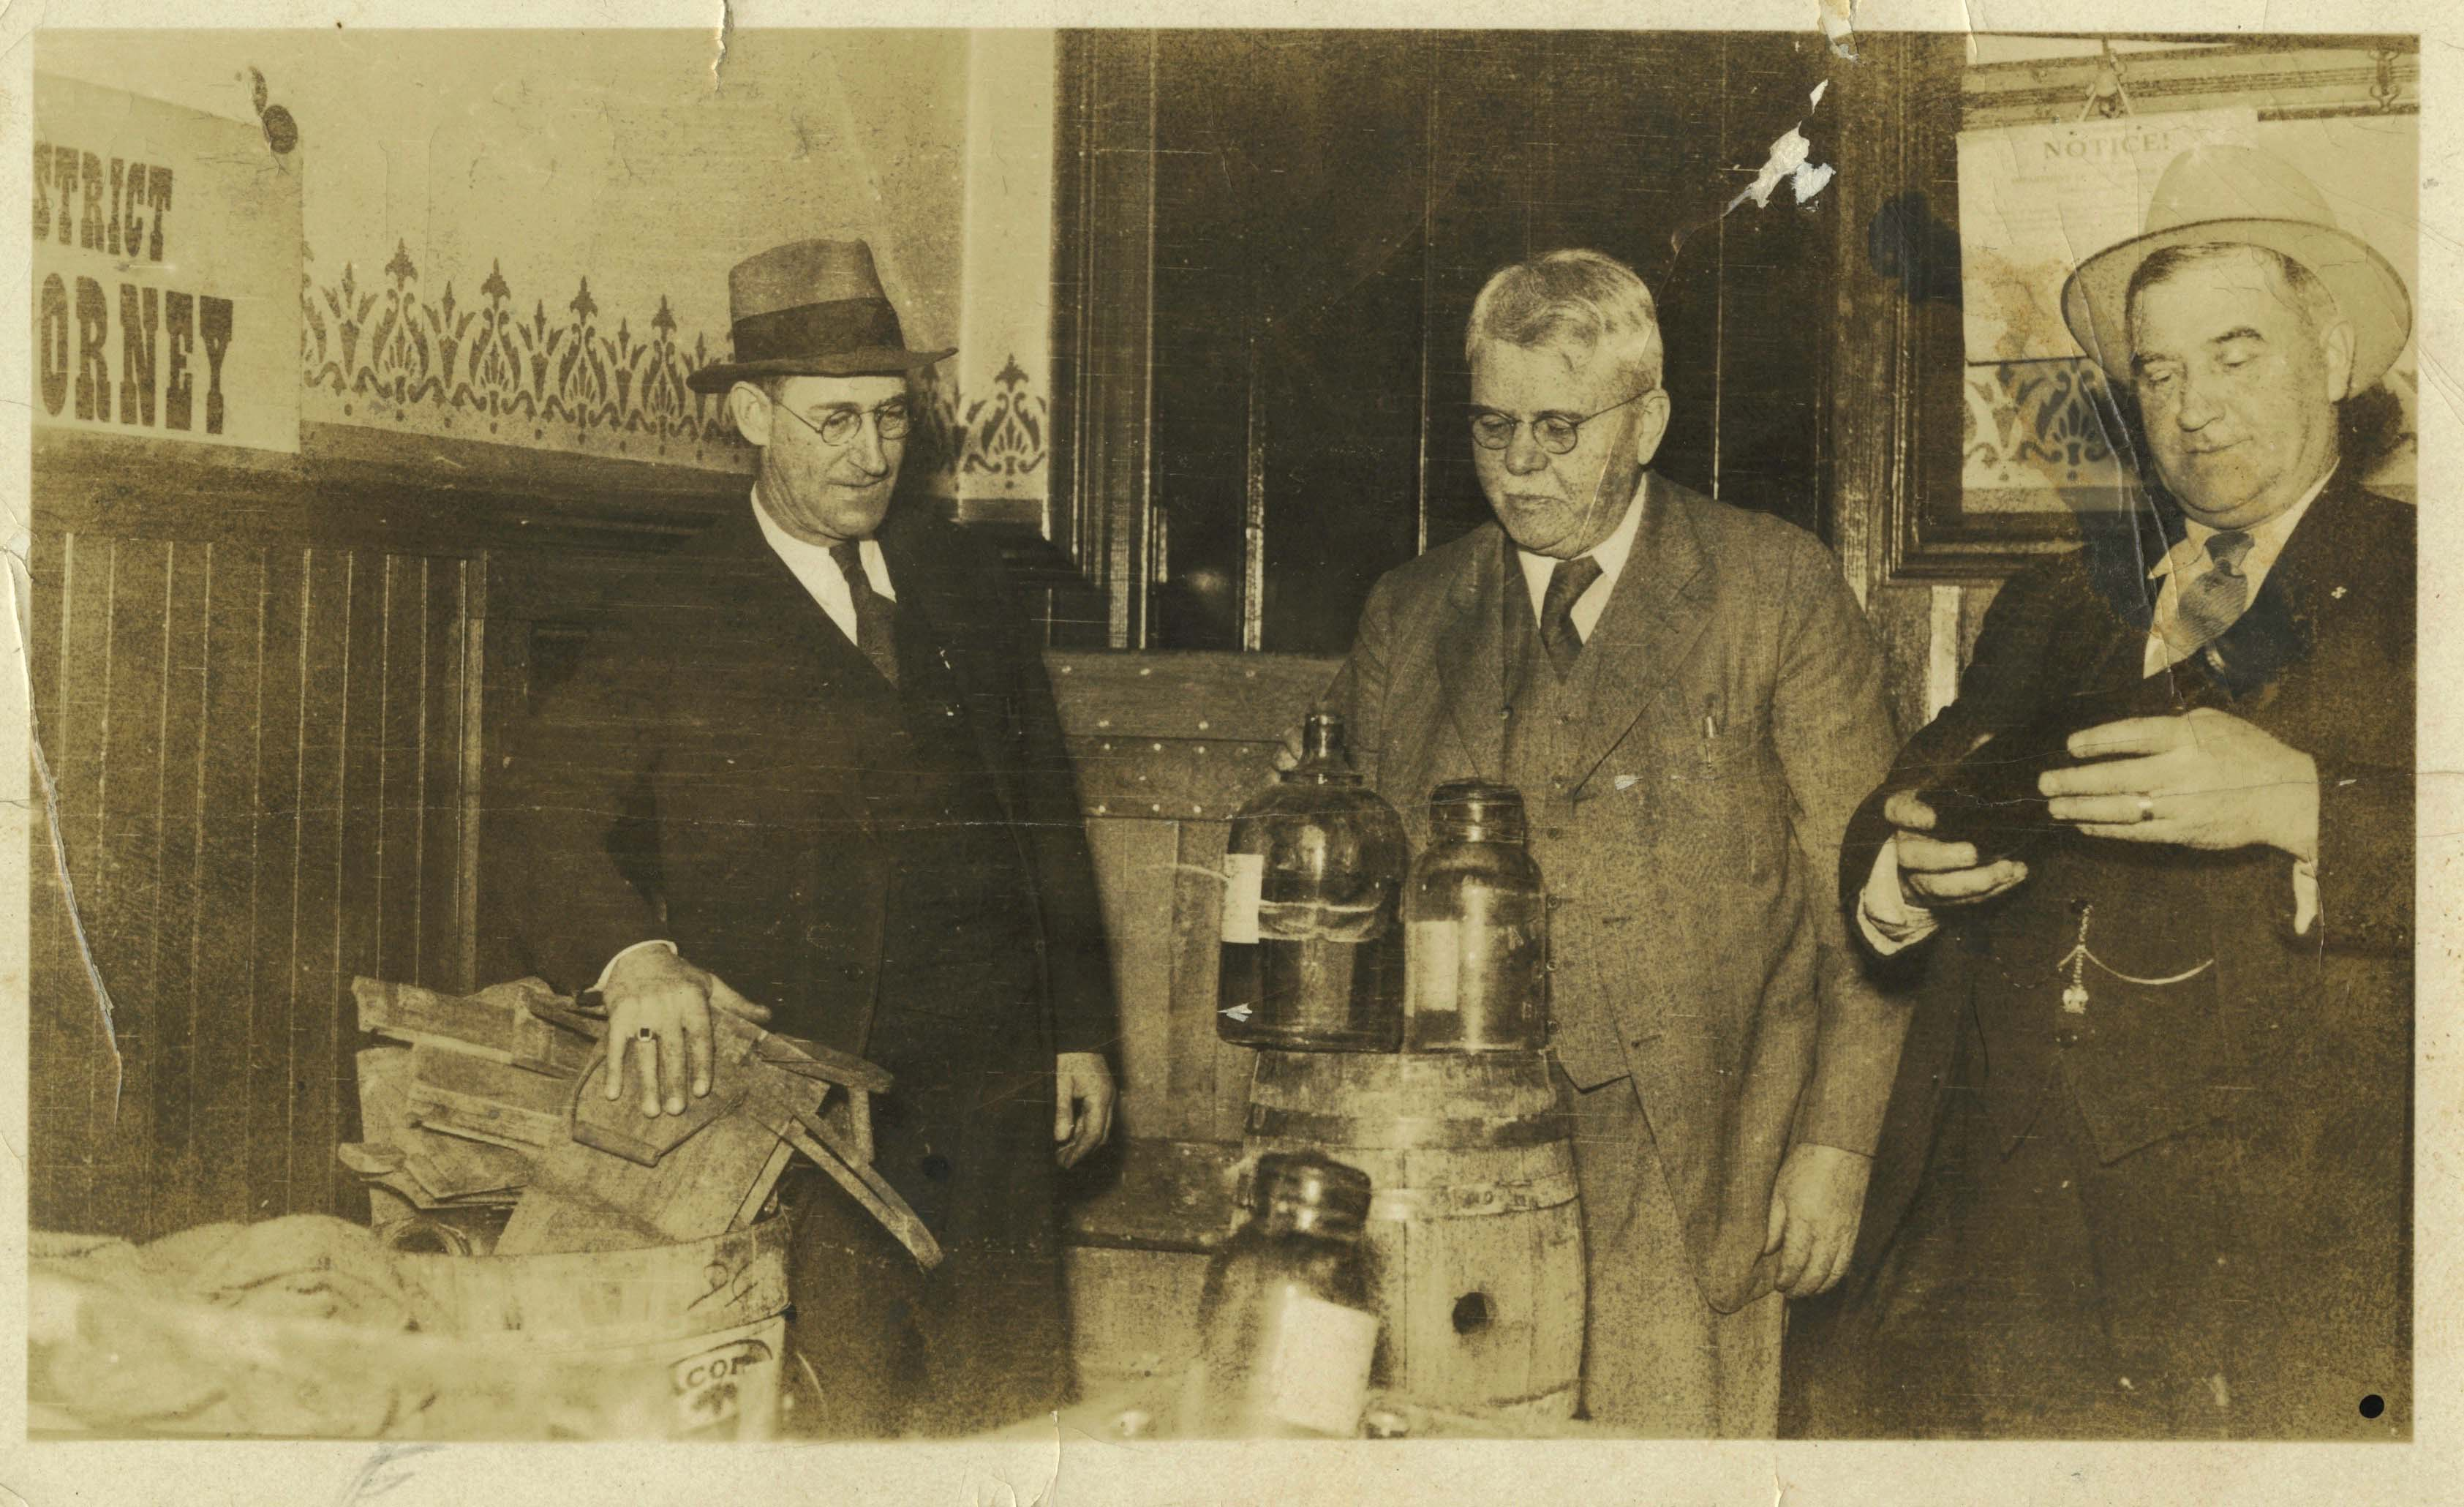 Seized Goods, Richmond, Prohibition